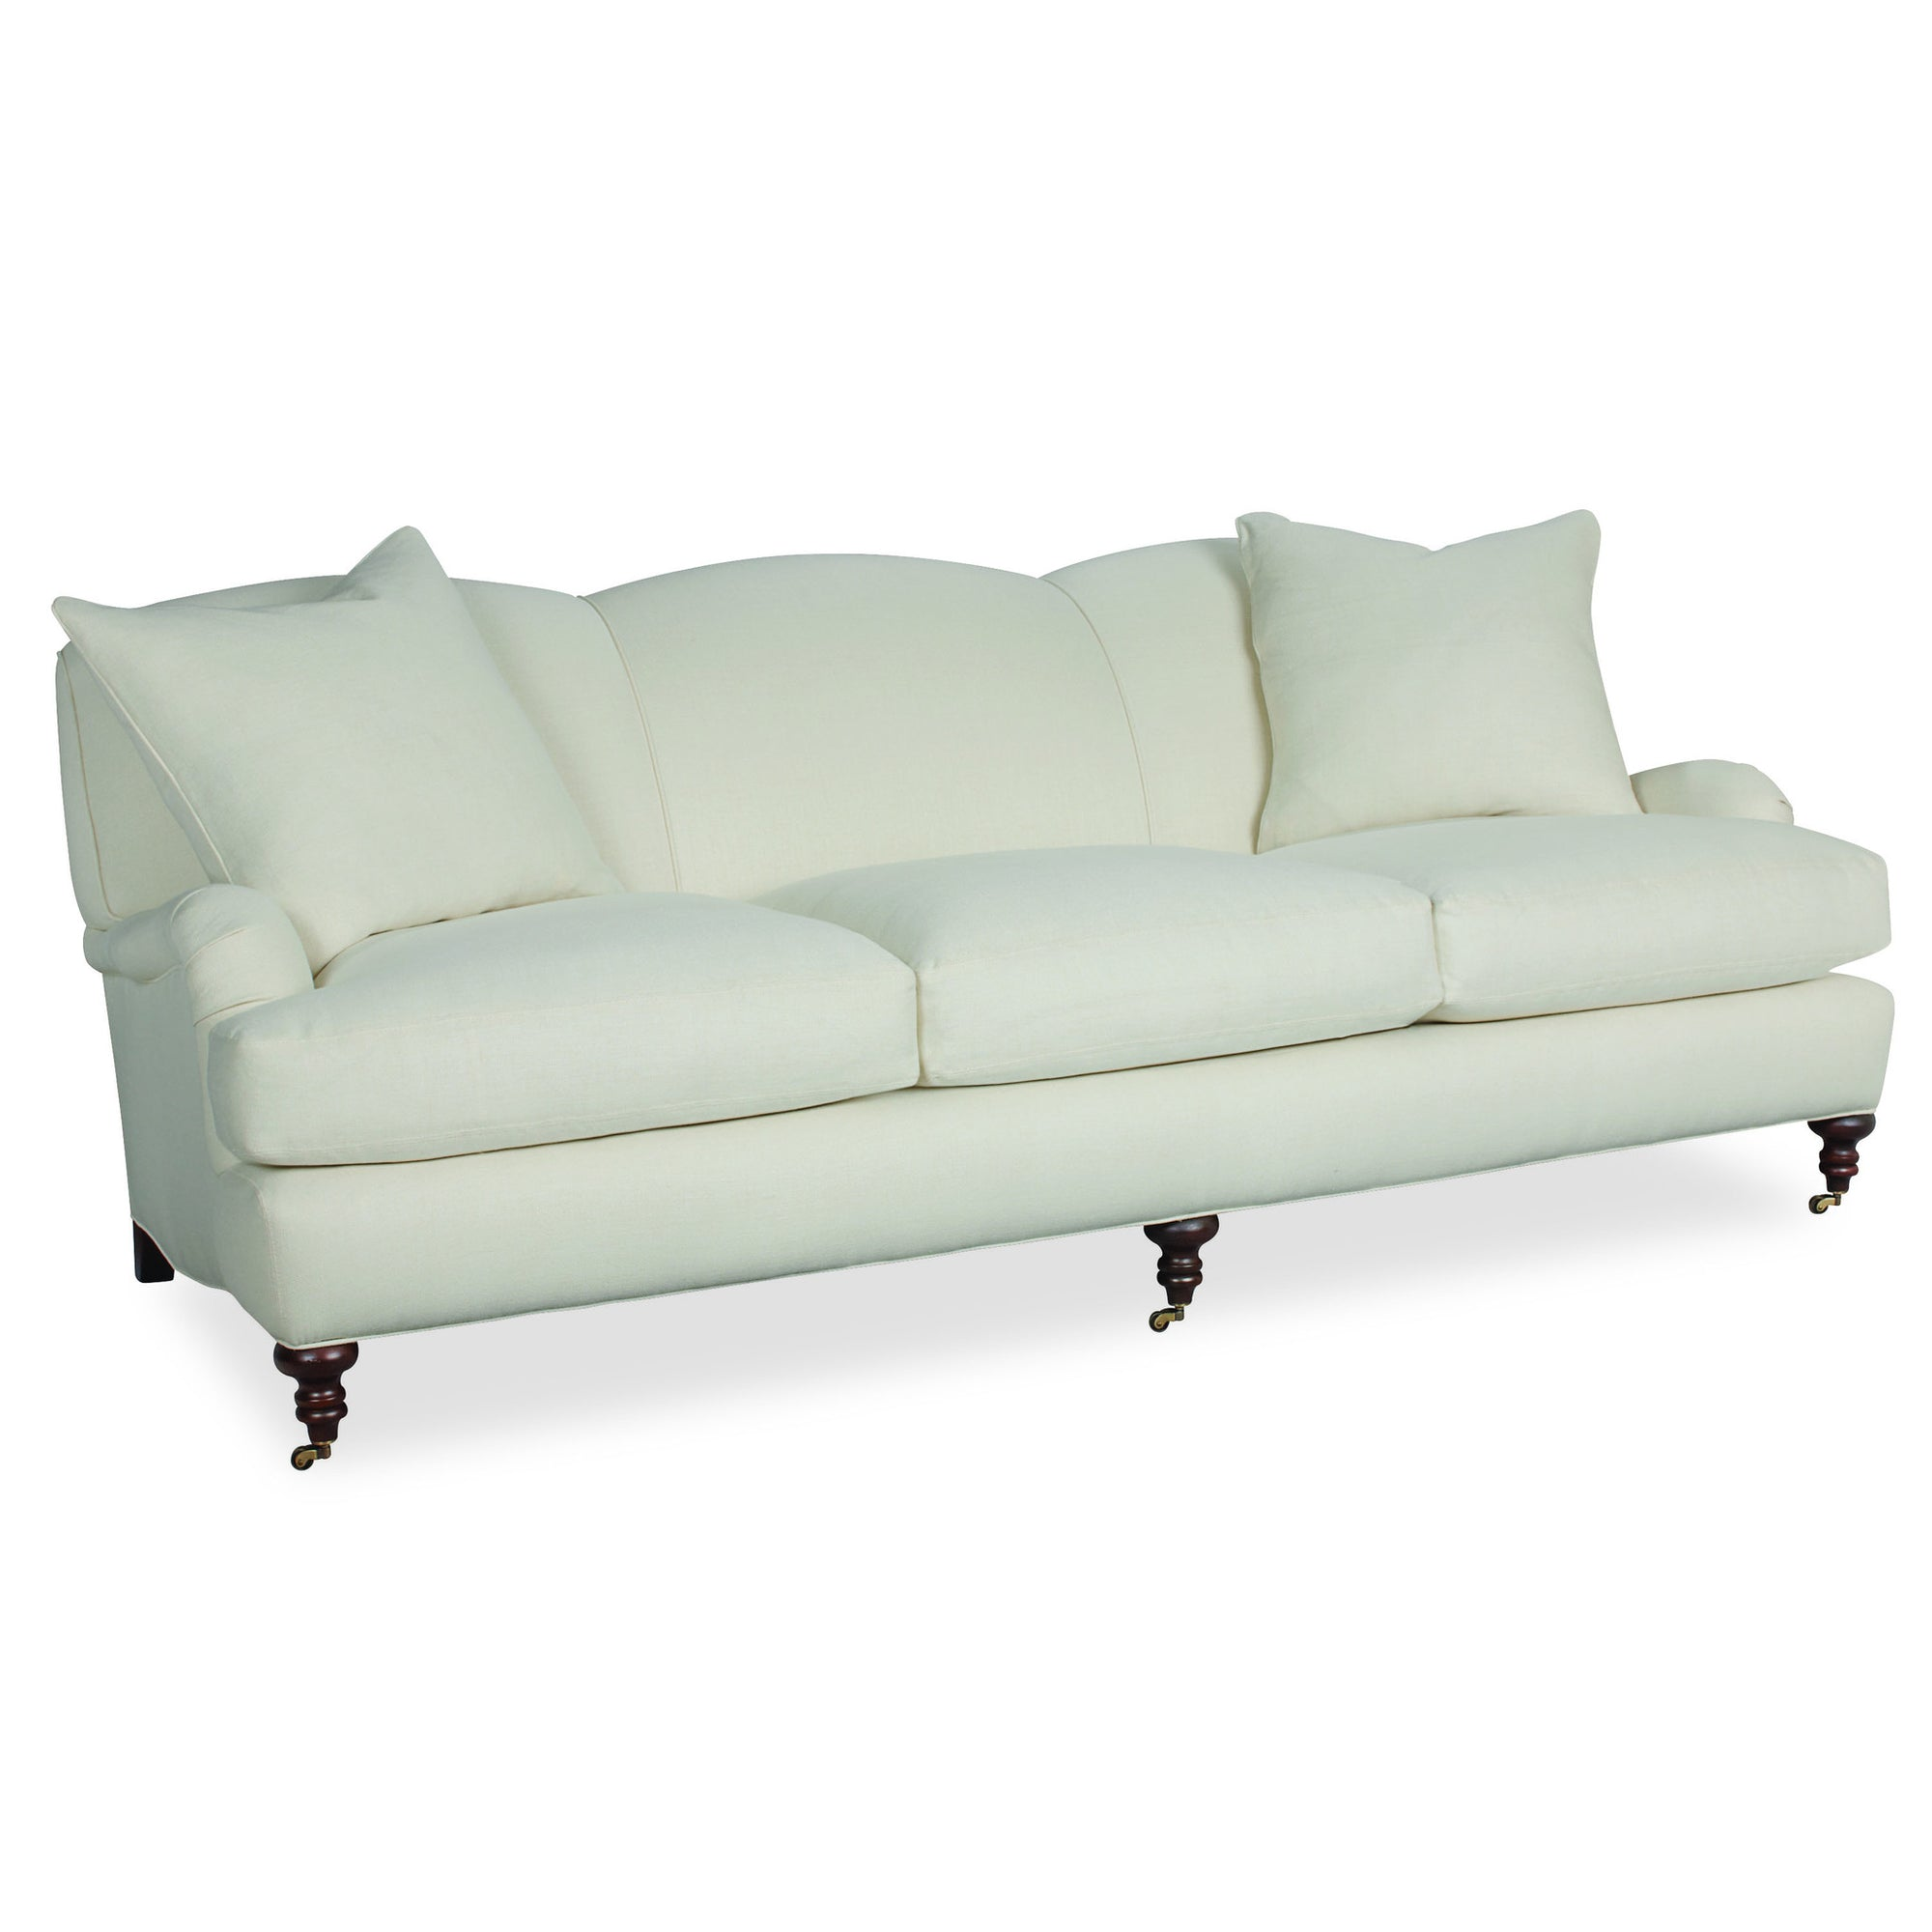 Lee Industries Sofas